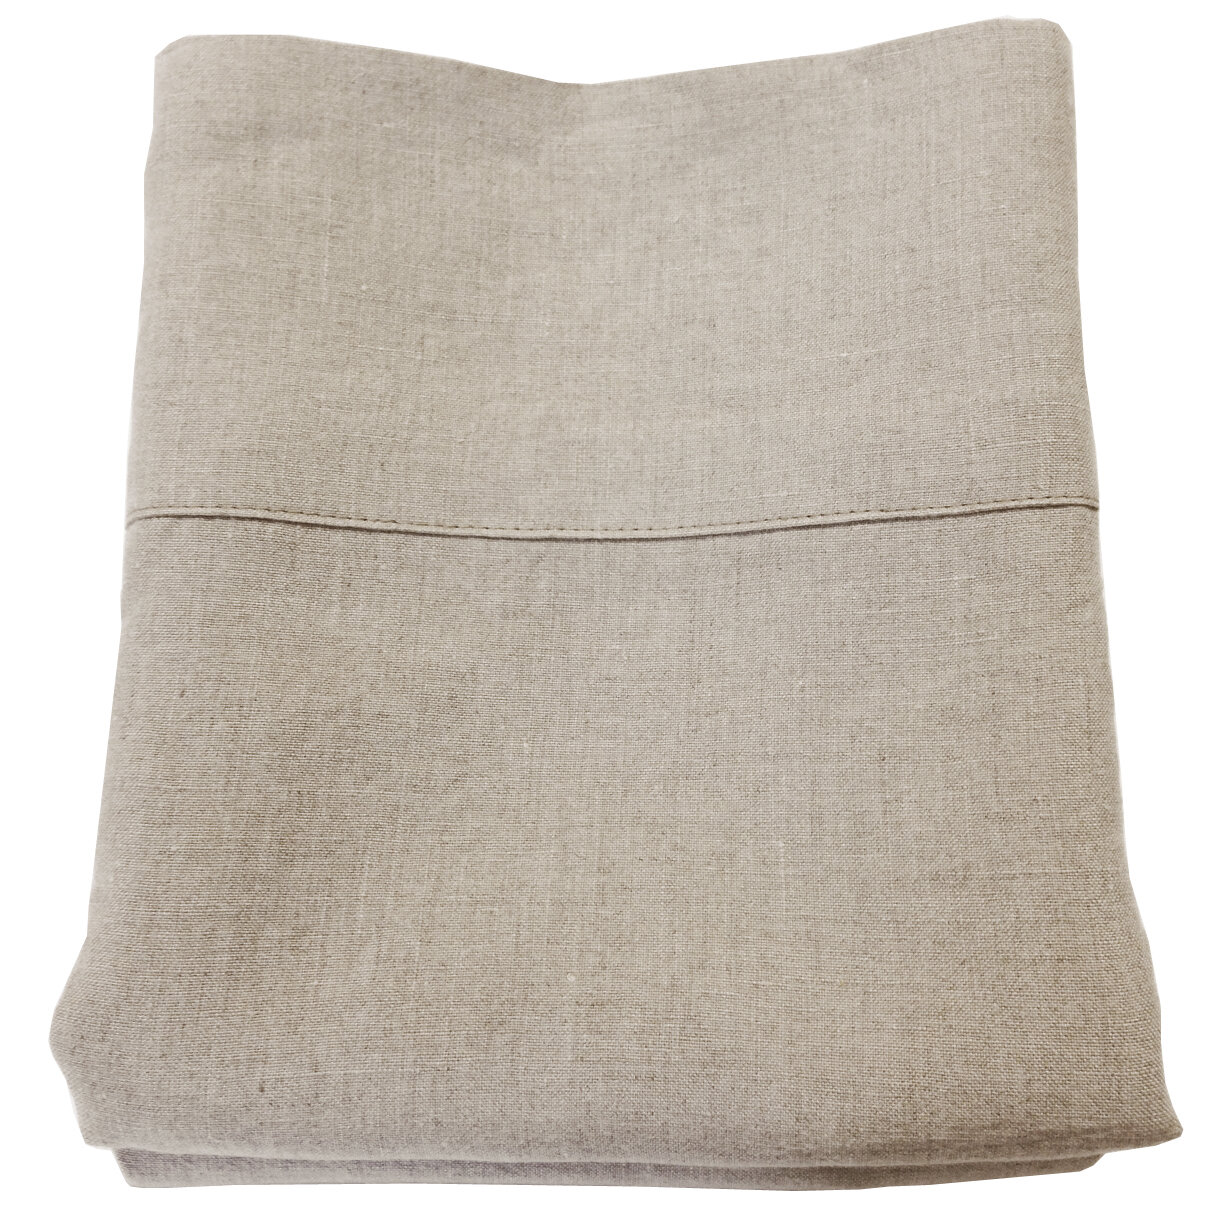 Tri Sew Pillowcases King Size Set of 2 Last One Linen Look Tans